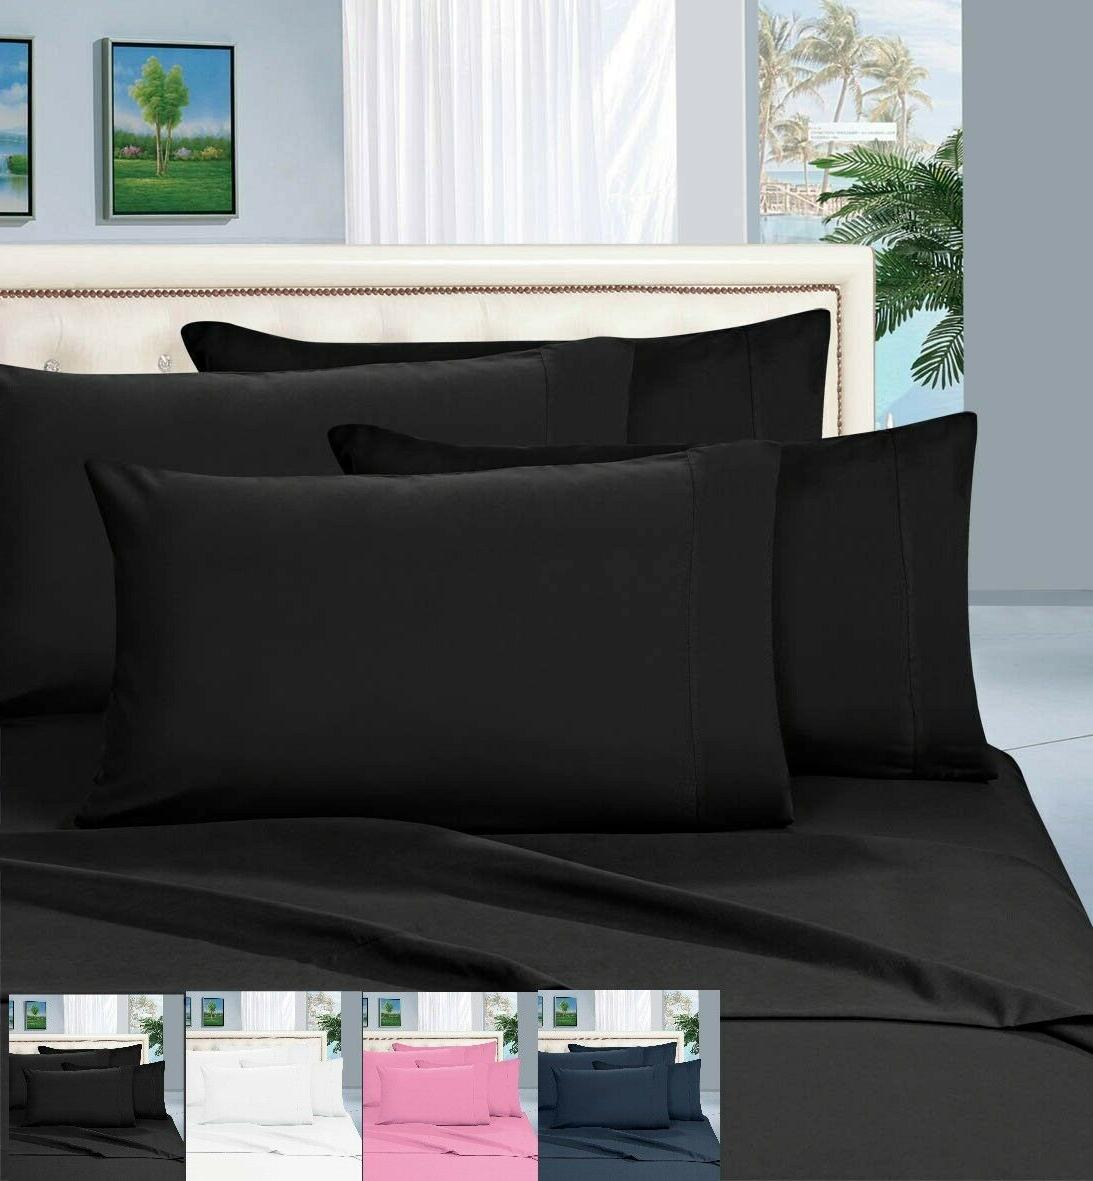 4 Pcs 1800 Thread Count Fitted Bedding Sheets Set Deep Pocke